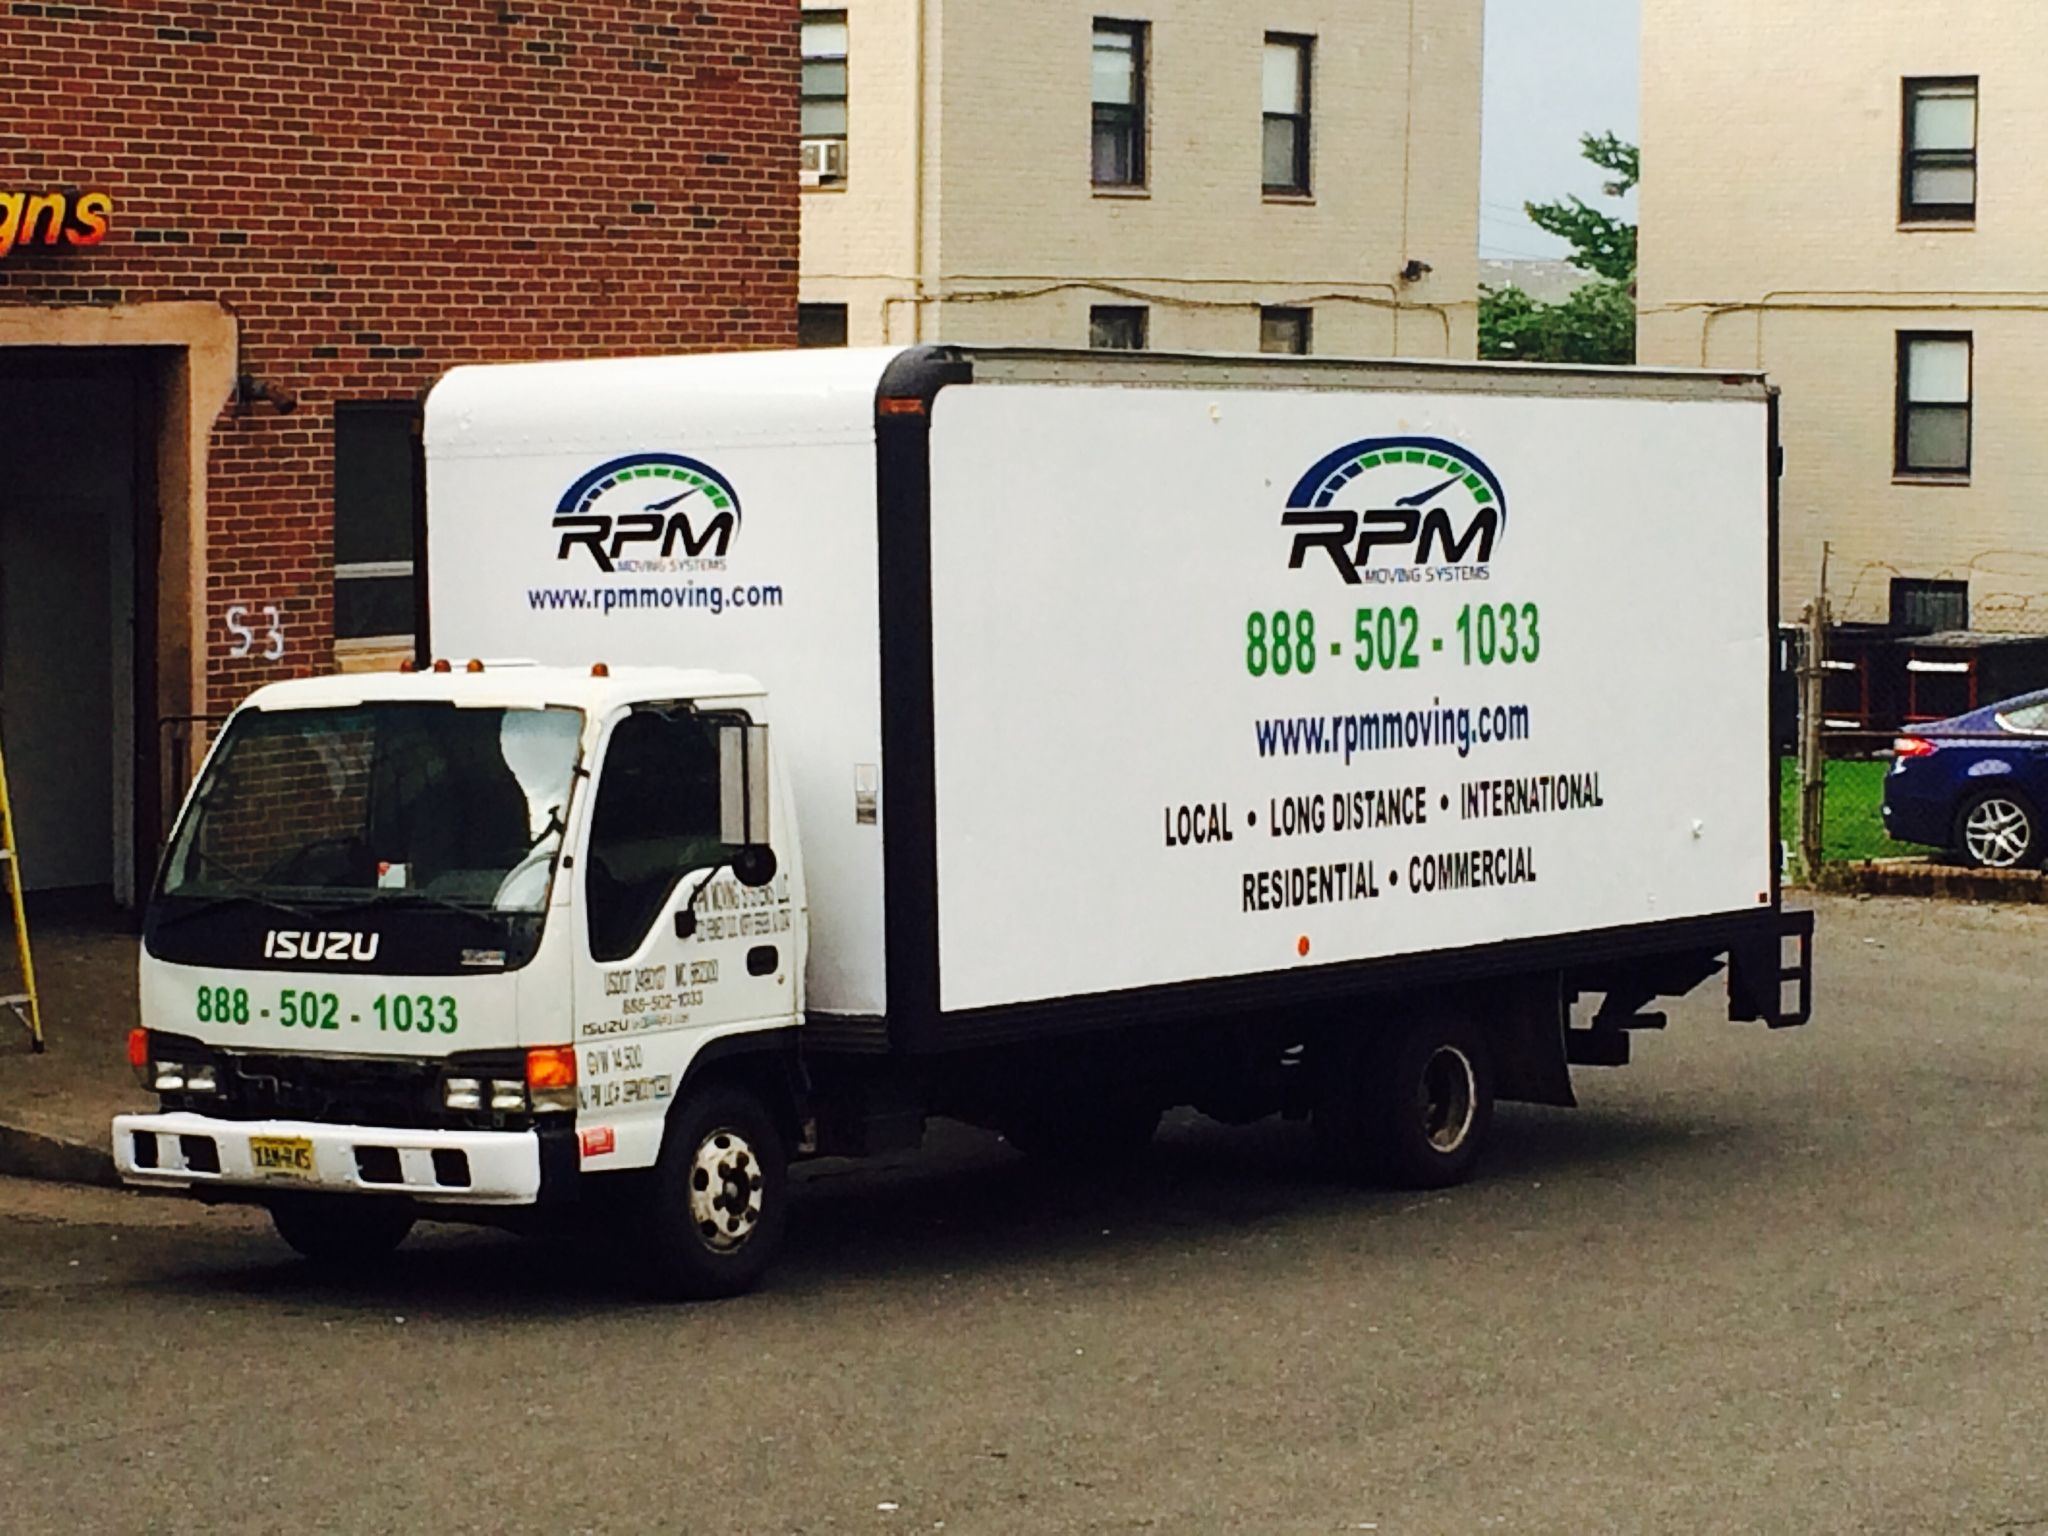 #North Bergen, NJ in New Jersey #jerseycity #edgewater #northbergen #secaucus #bayonne #rutherford #northarlington #hoboken #nyc #westnewyork #newjesey #rpmmoving #moving #movers #deals